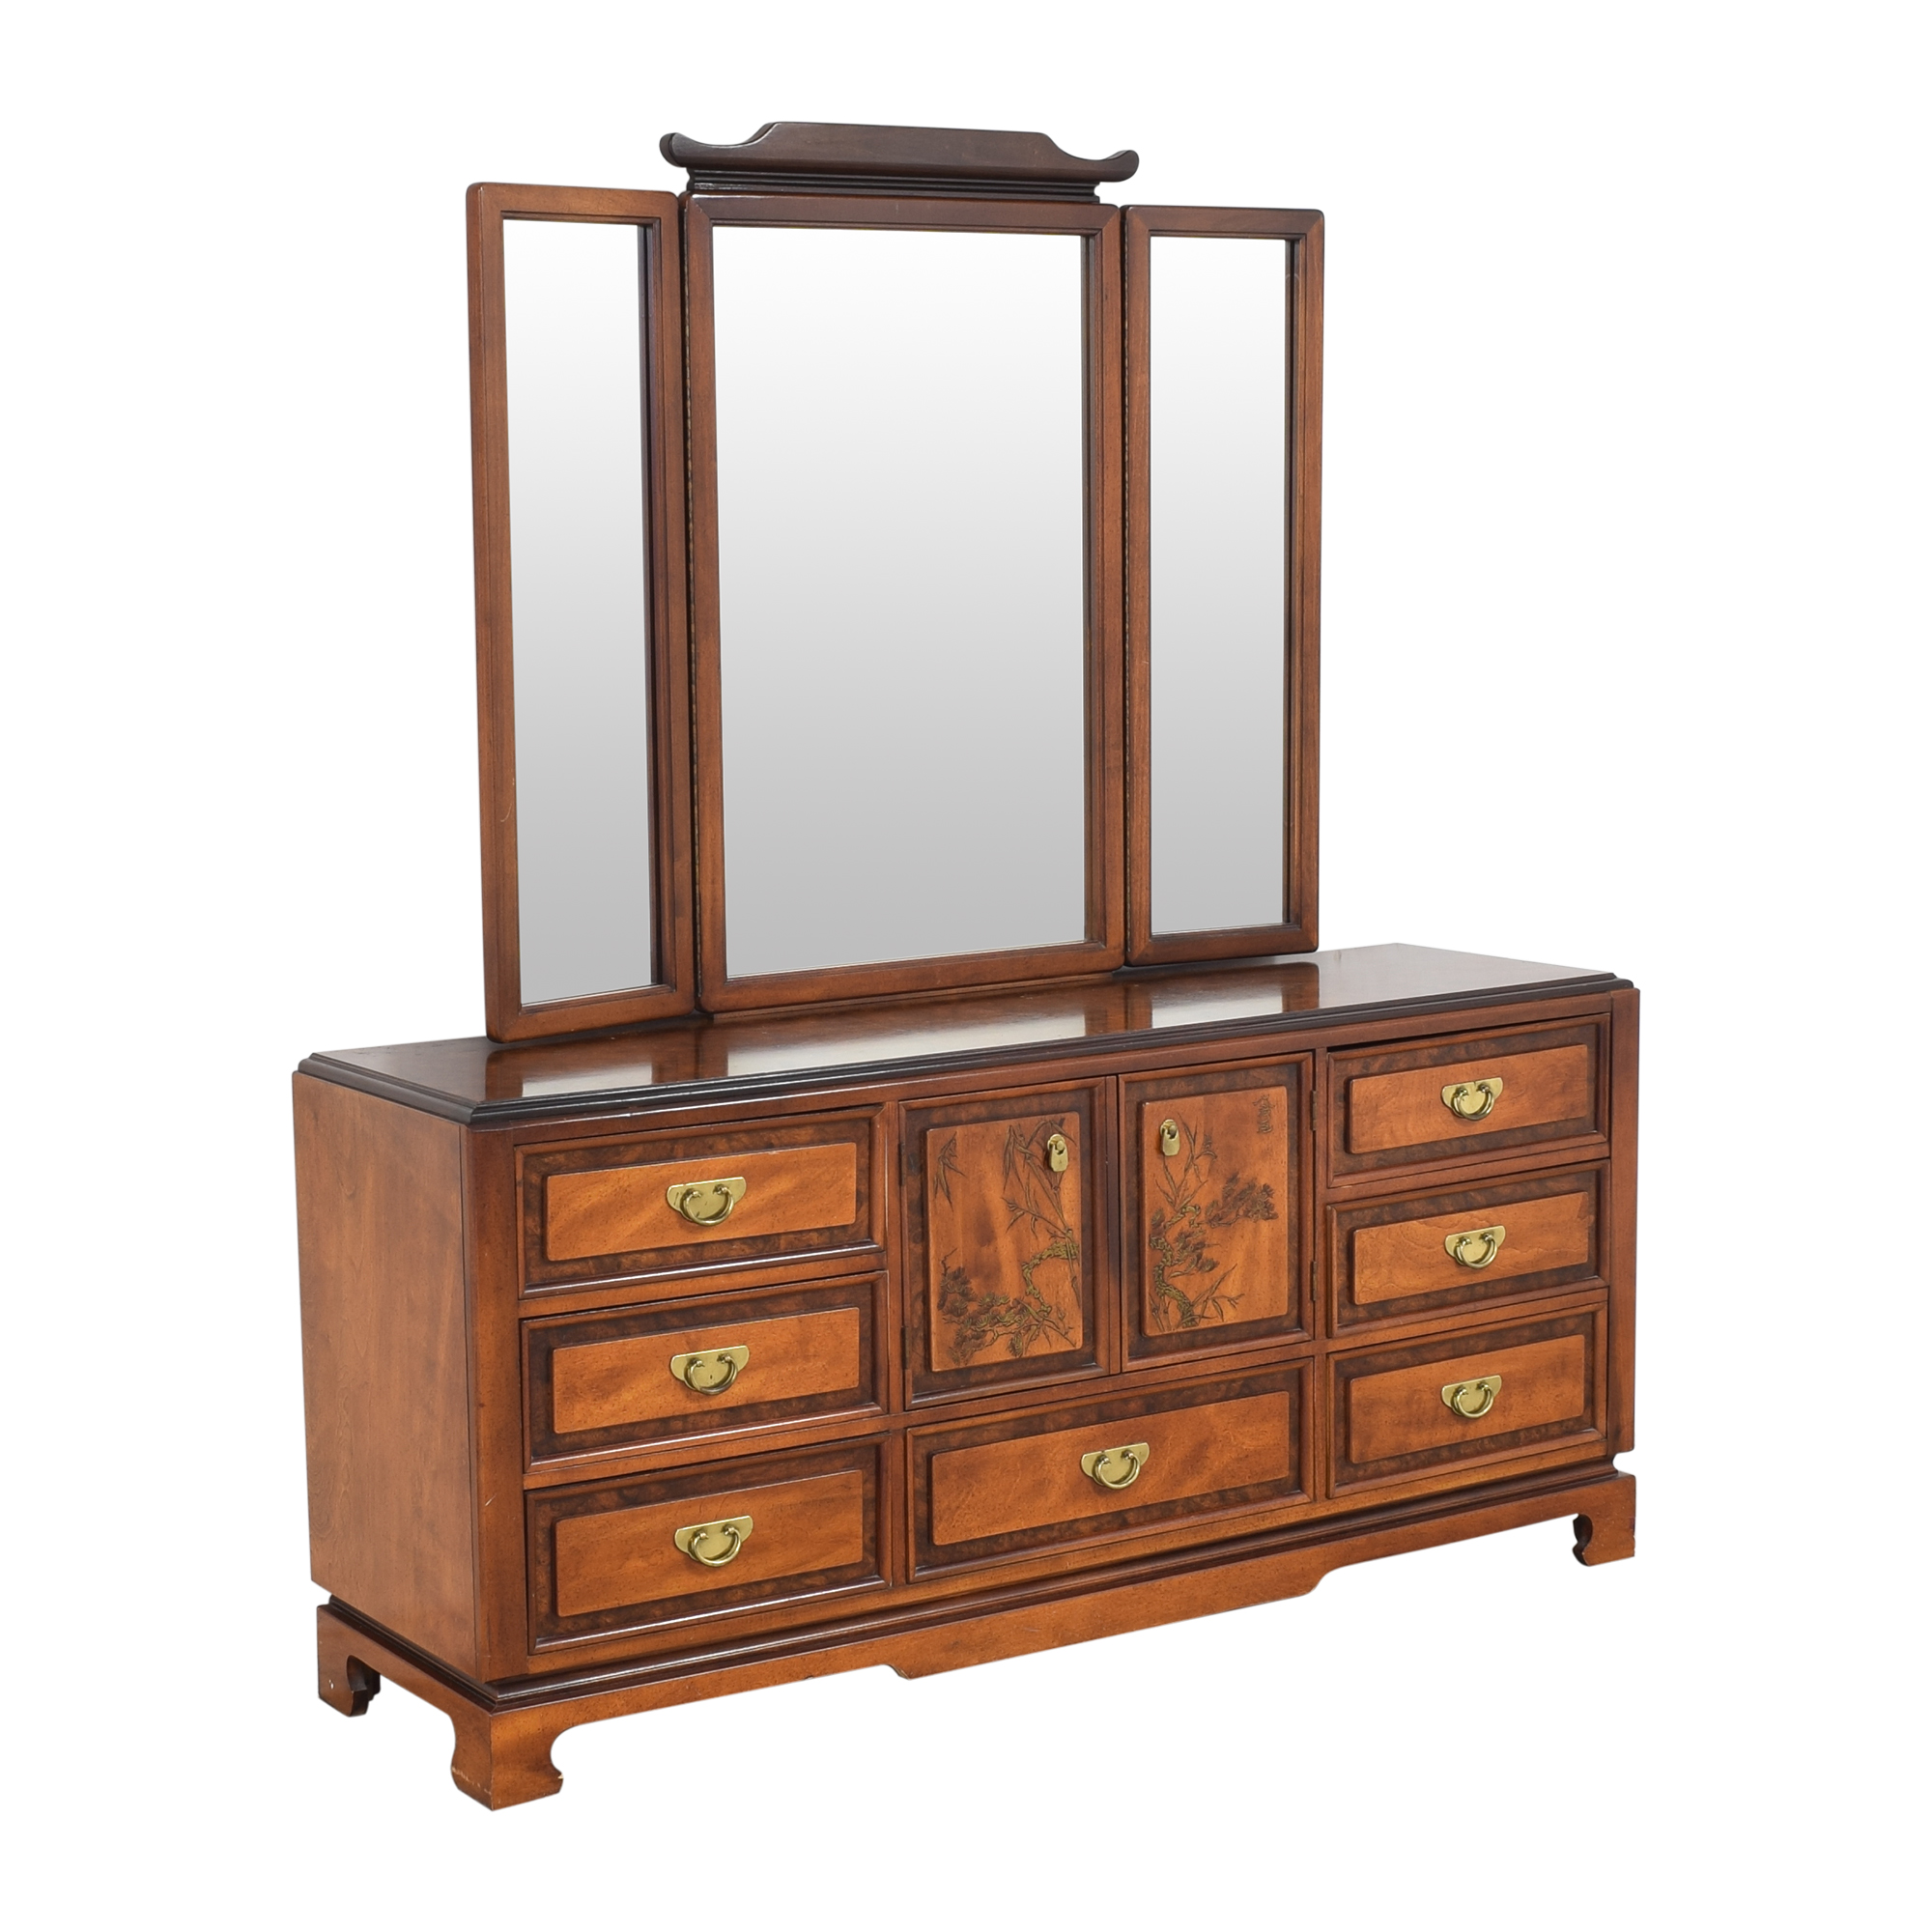 Bassett Furniture Chinoiserie Dresser with Trifold Mirror sale